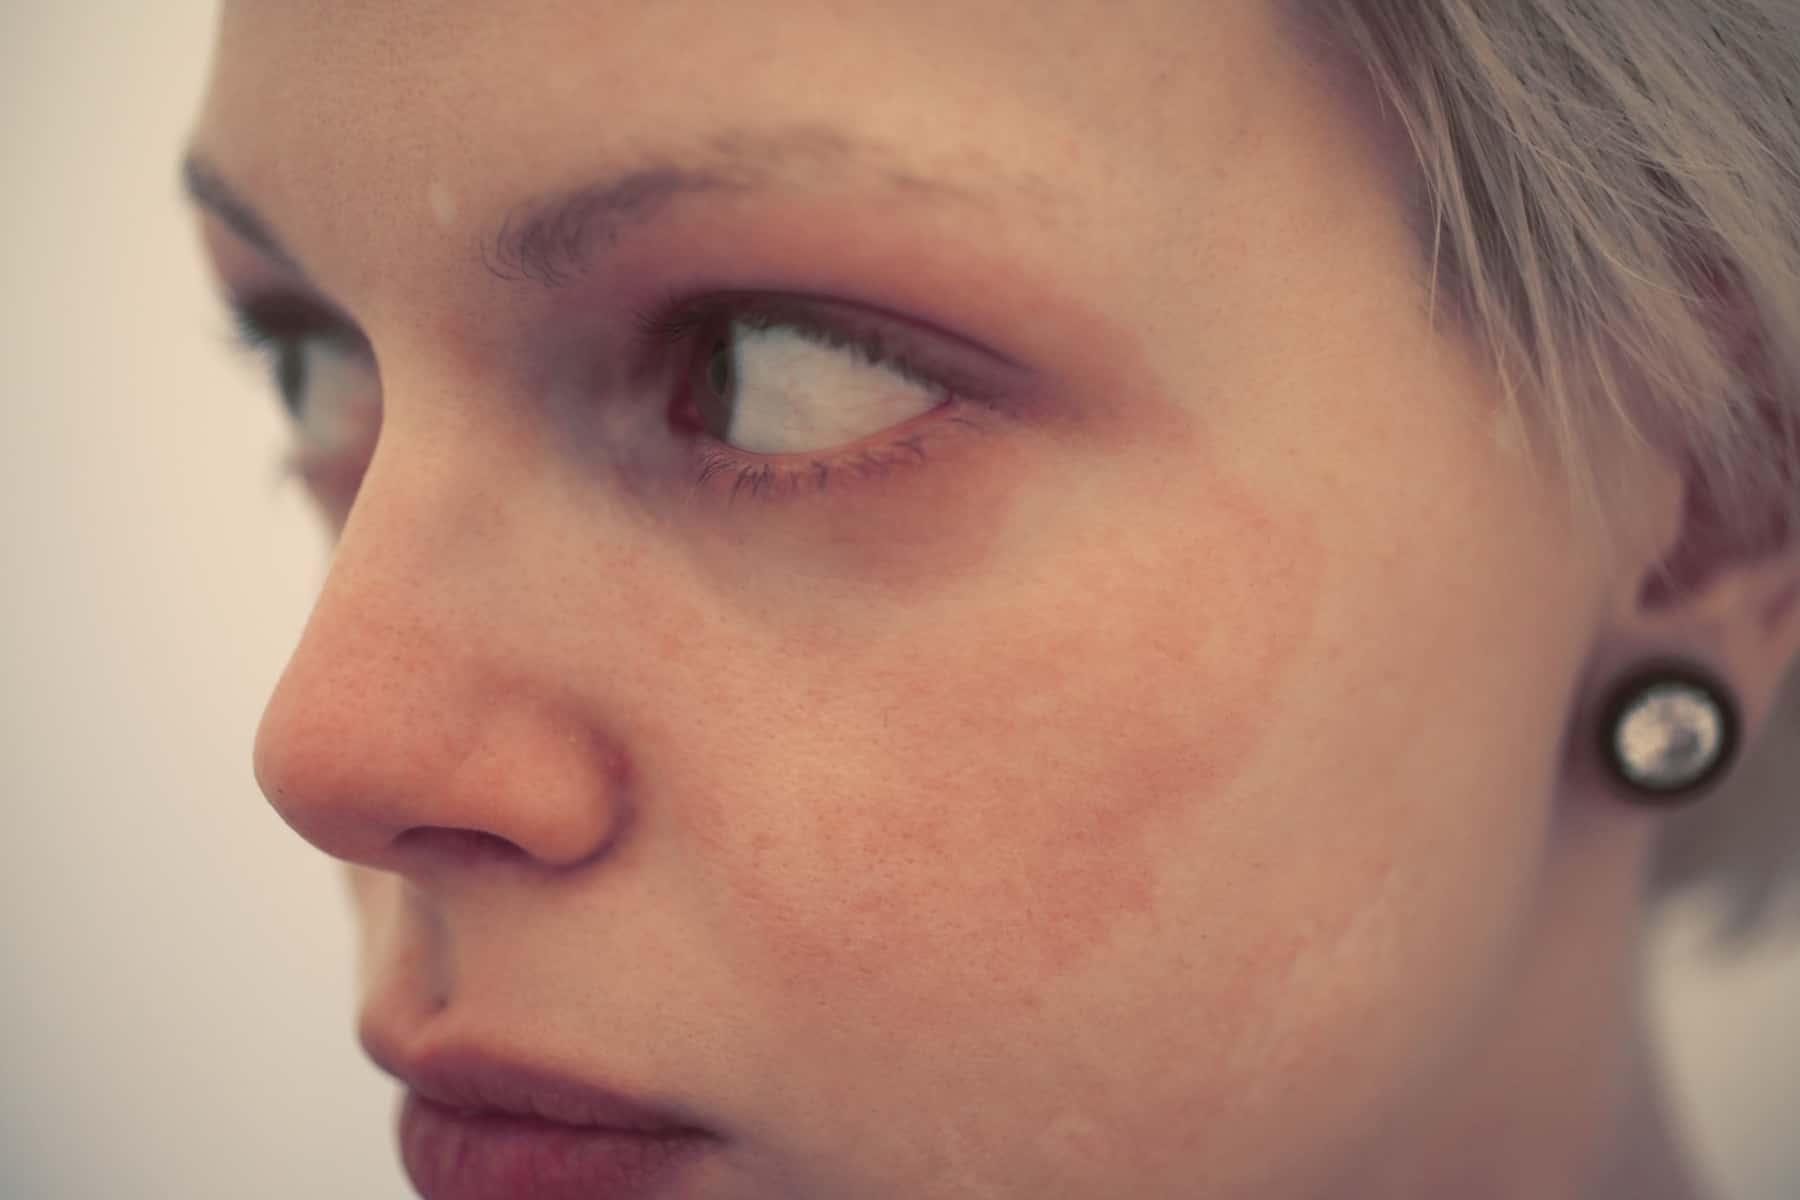 a woman with skin allergy